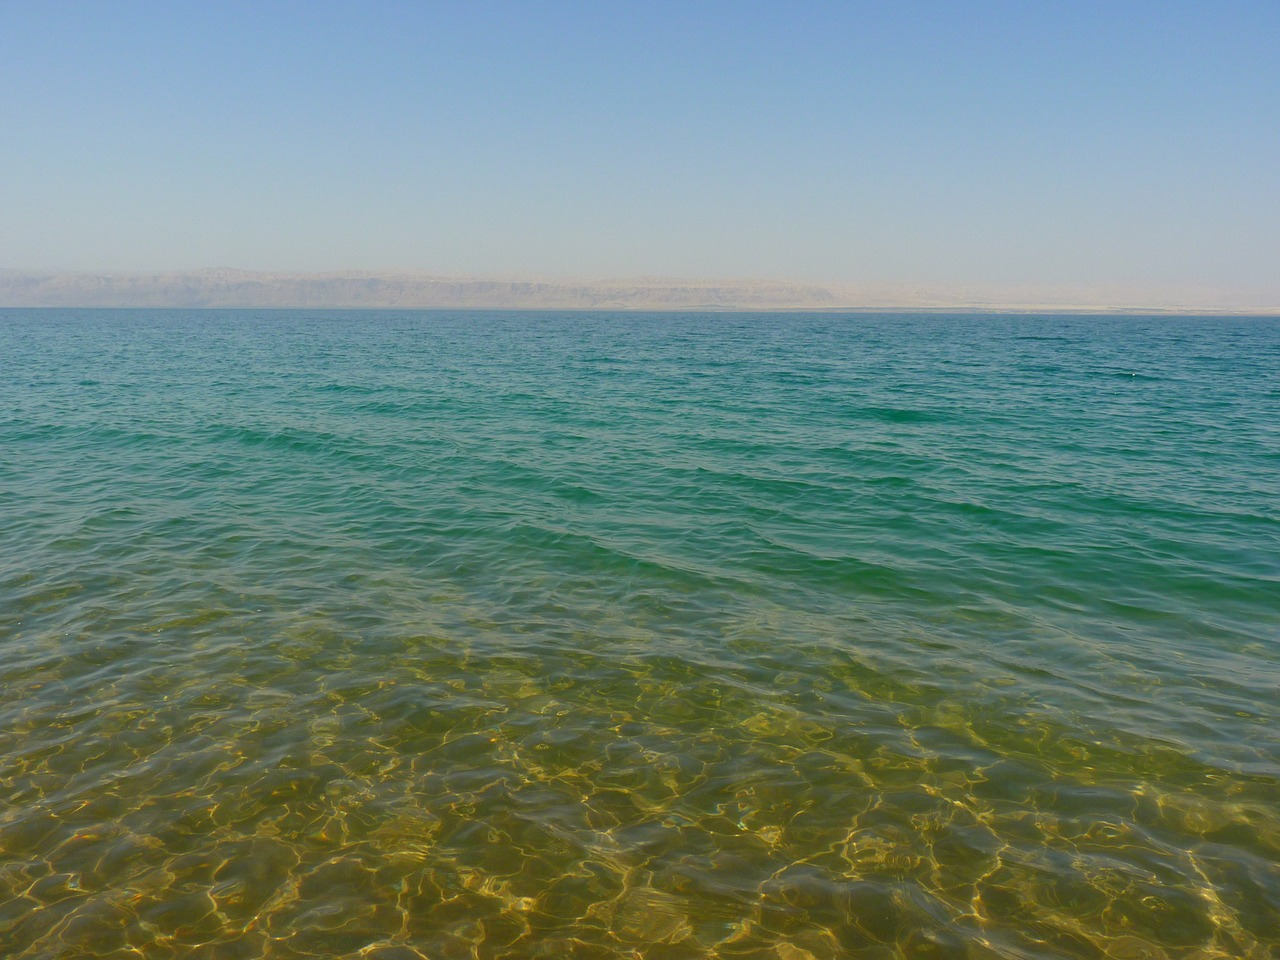 What You Need to Know about the Red-Dead Sea Pipeline Project